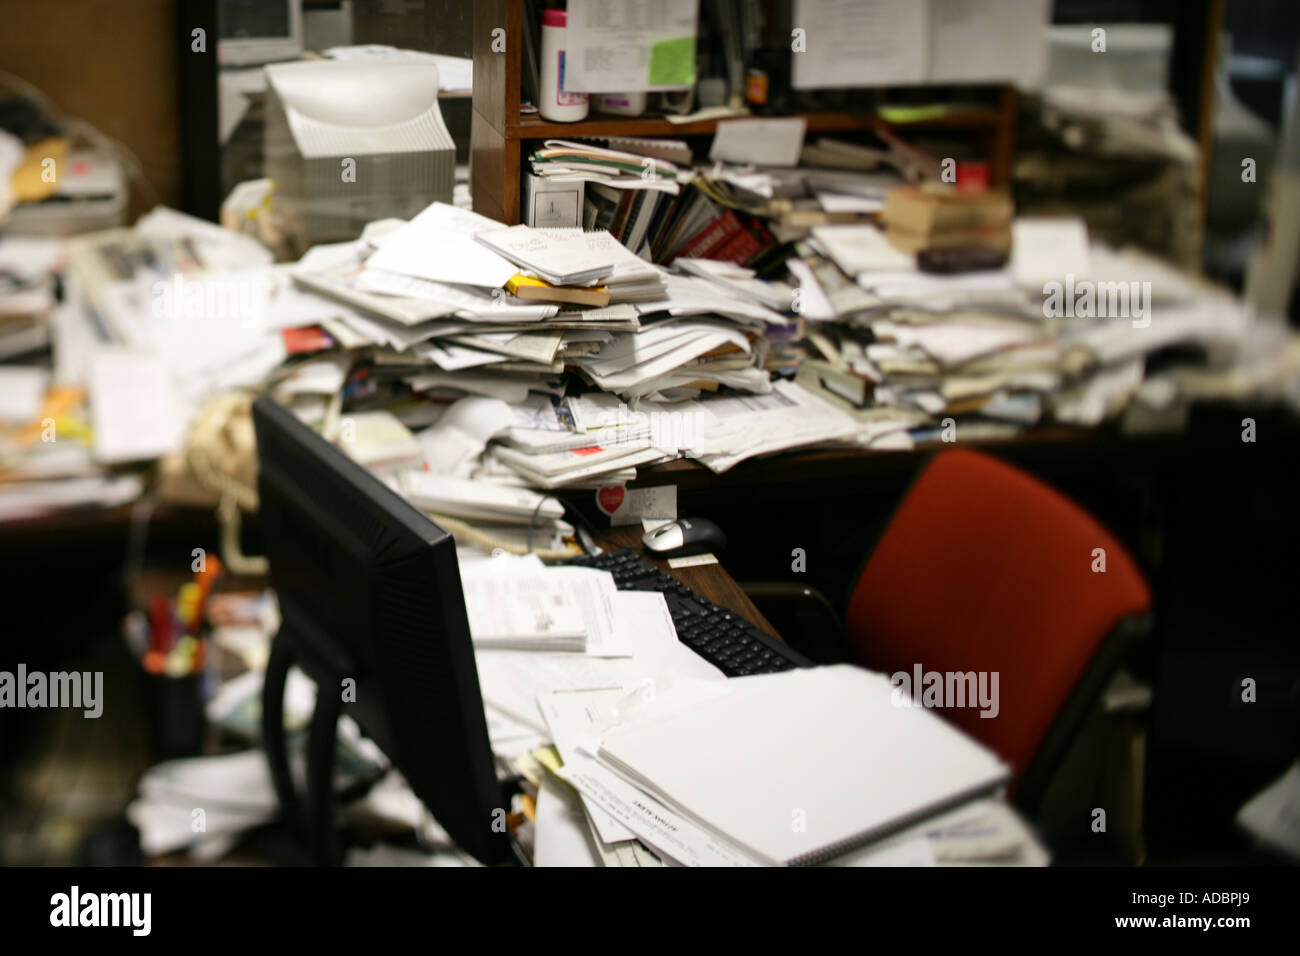 A messy desk with lots of paperwork - Stock Image